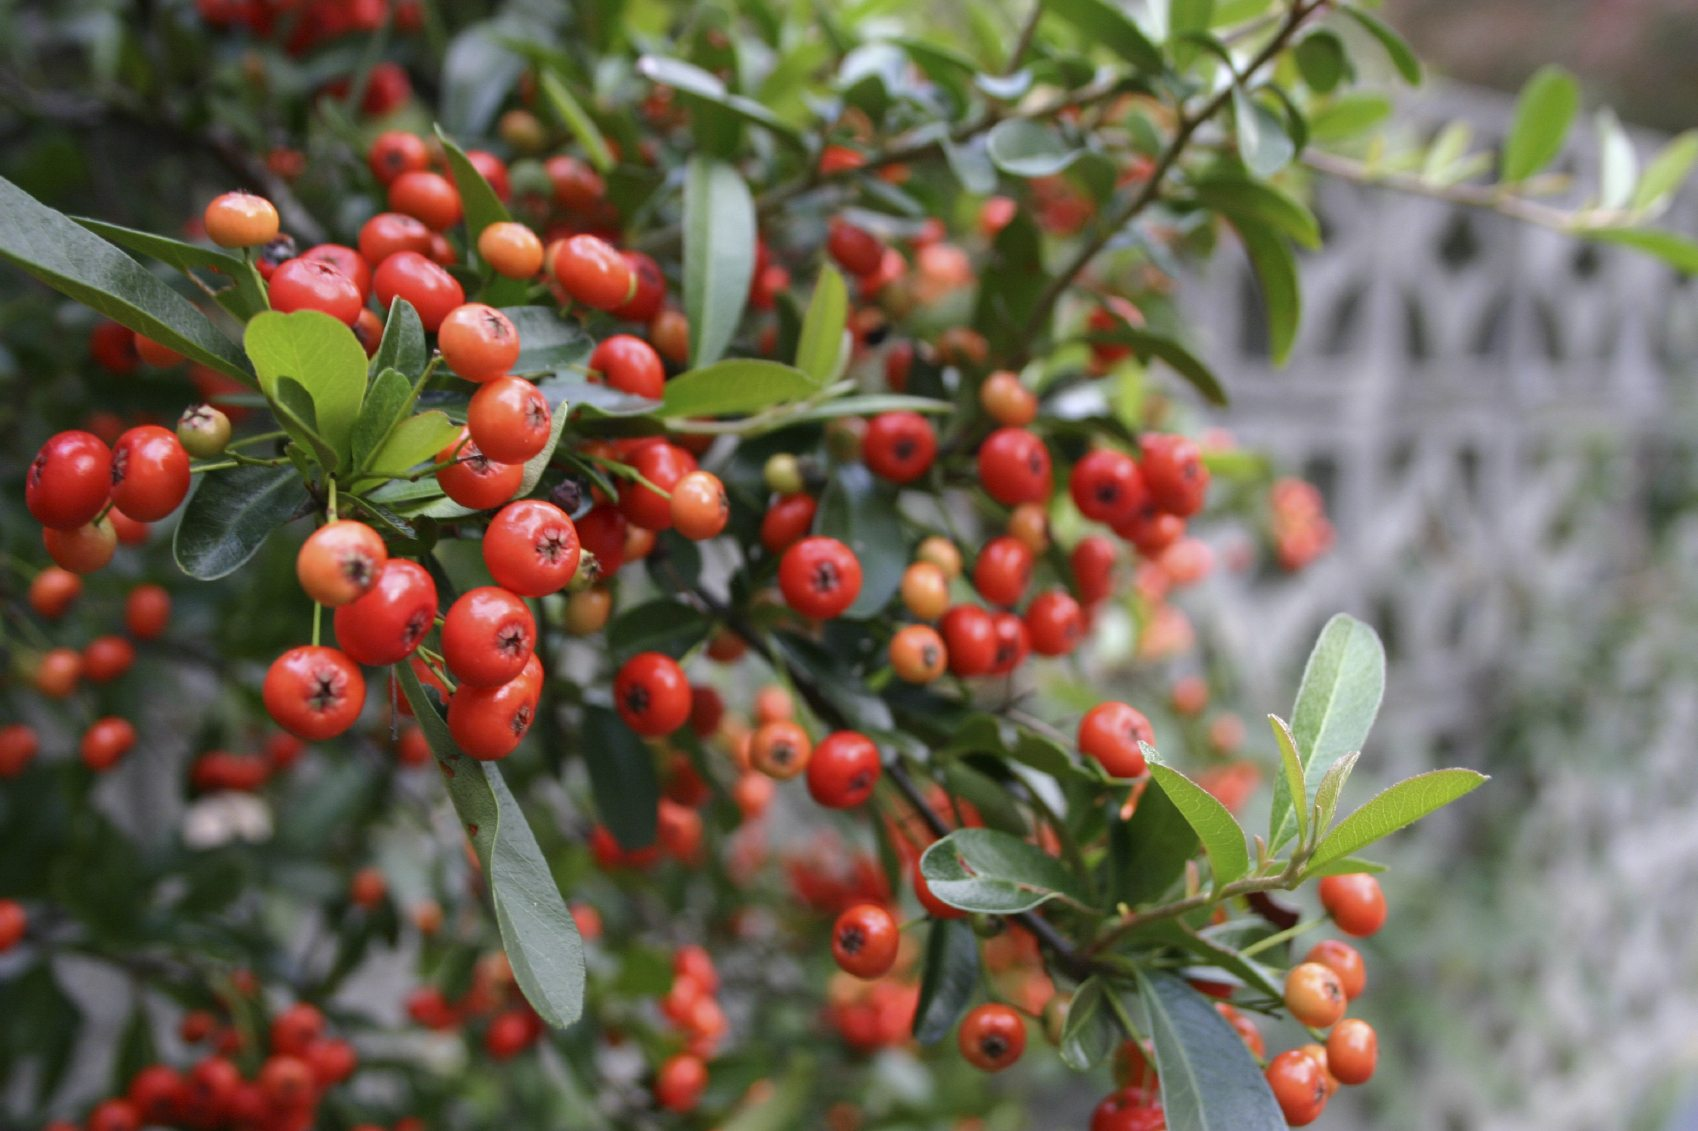 Providing Tree And Plant Care: Growing Firethorn Shrubs In The Landscape